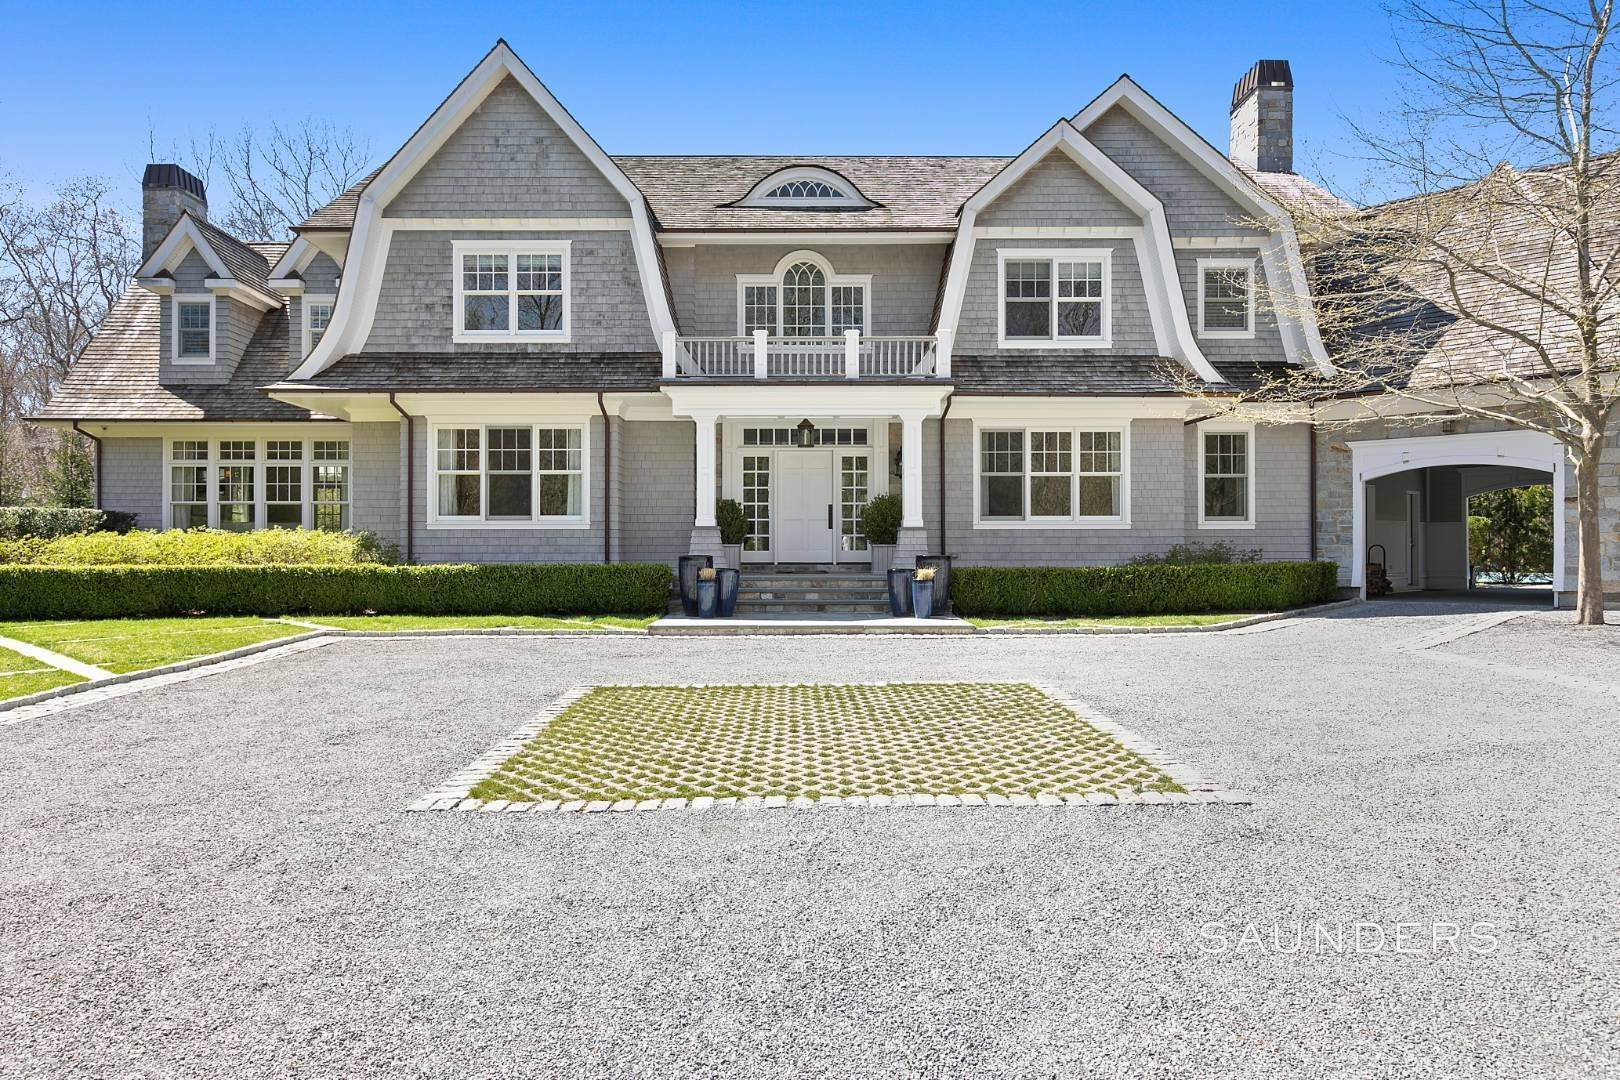 Single Family Homes for Sale at Classic Sagaponack Elegance With Pool And Tennis Sagaponack, Southampton Town, NY 11962